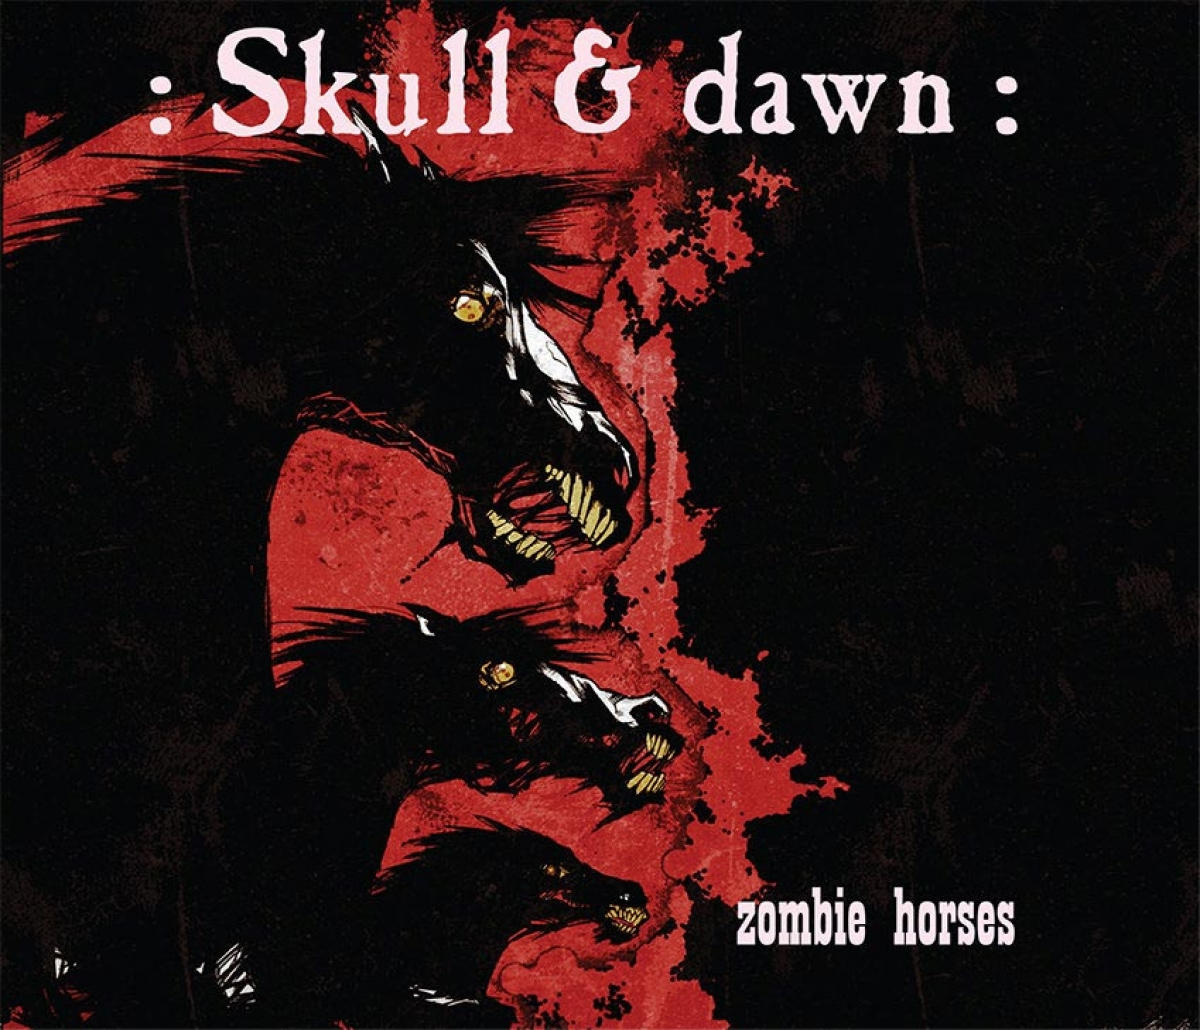 :Skull and Dawn: - Zombie Horses (3 Shades of Black, 2016)